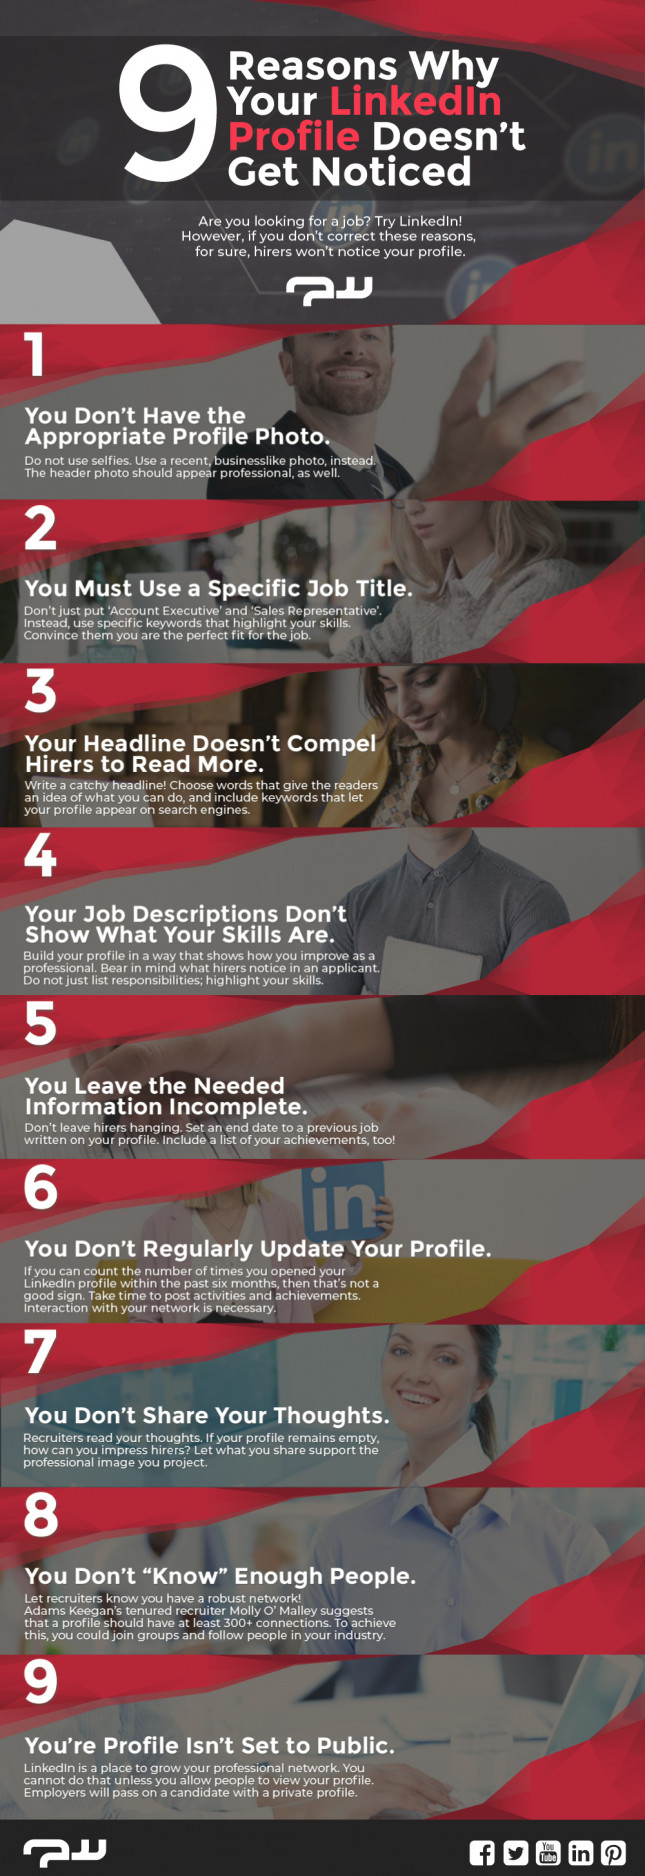 9 Reasons Why Your LinkedIn Profile Doesn't Get Noticed